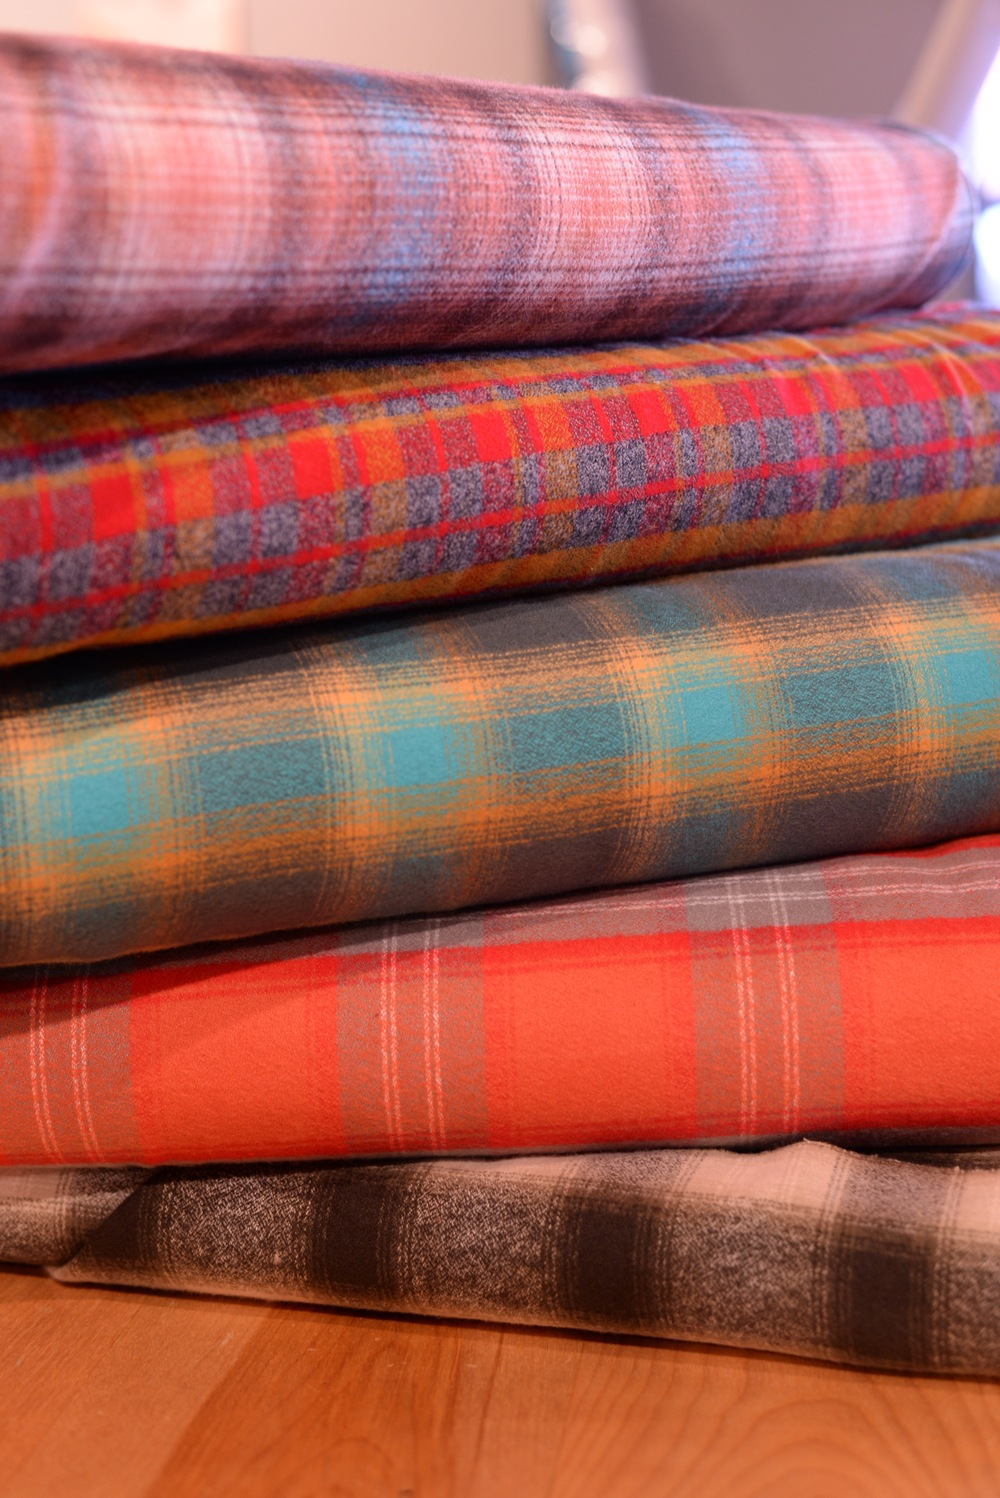 Robert Kauffman's plaid flannels are cozy and come in lots of colors!